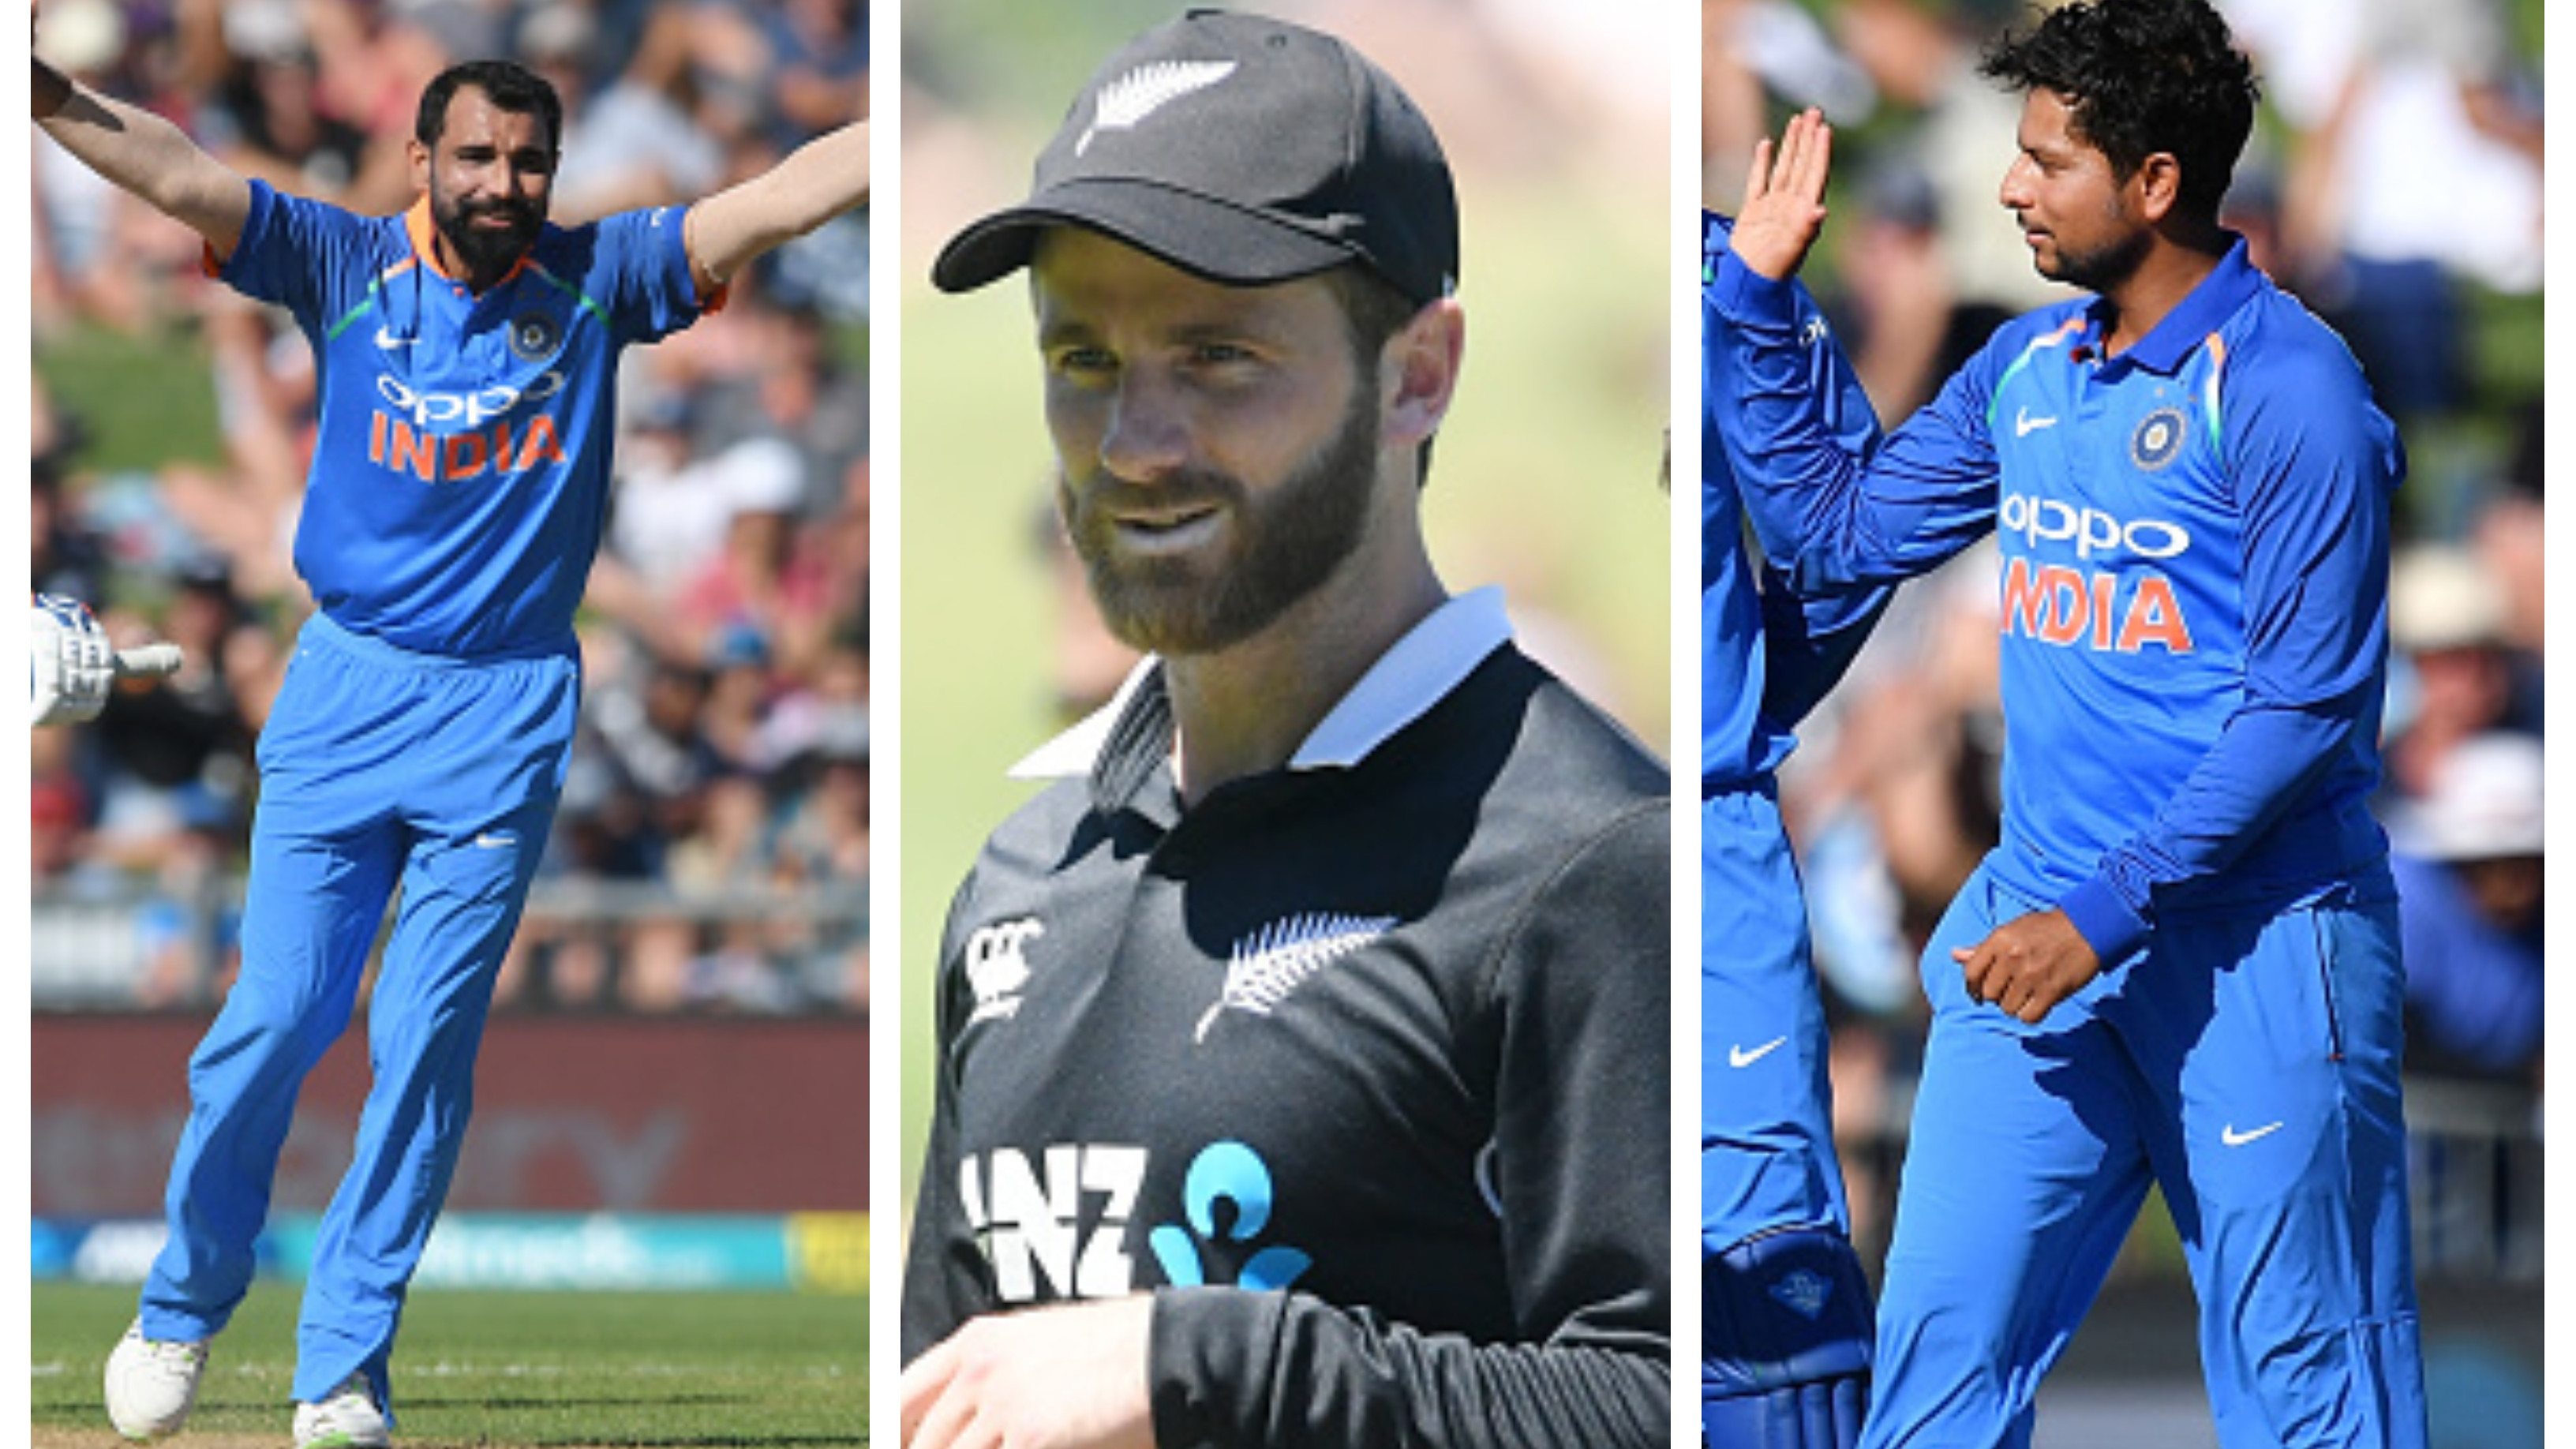 NZ v IND 2019: Kane Williamson credits Indian bowlers for their stellar effort in Napier ODI